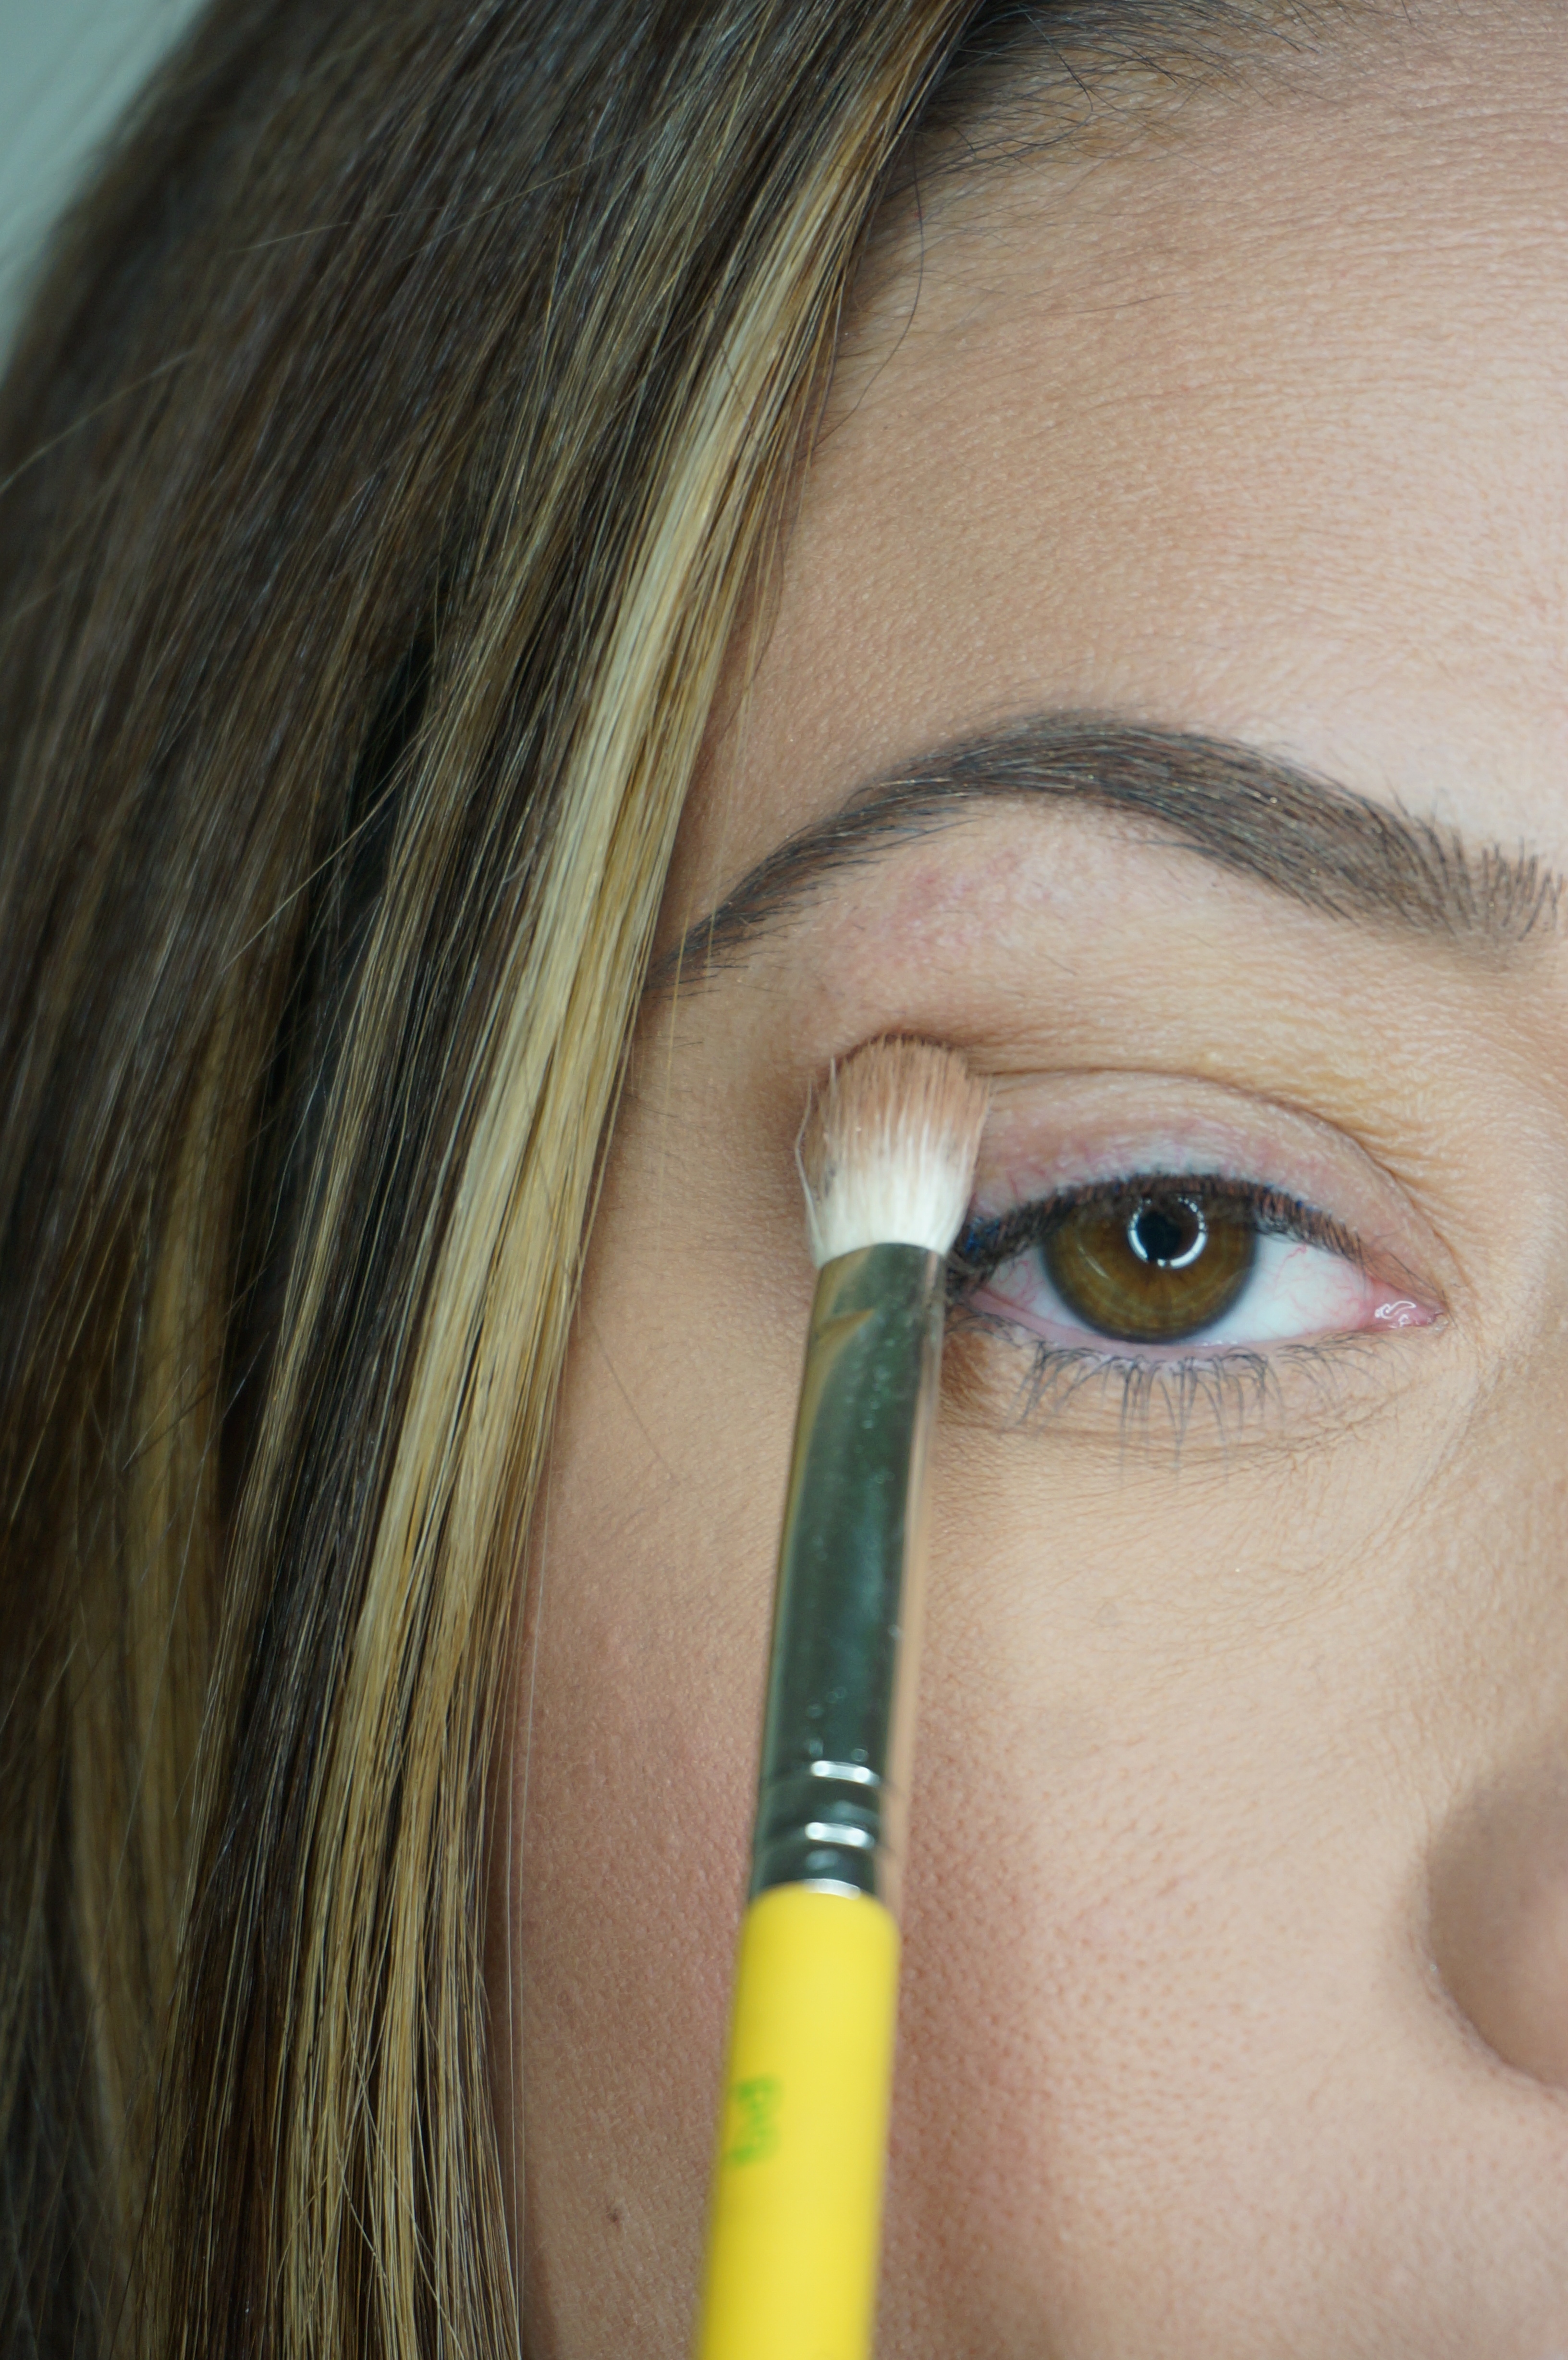 Beauty Tip Tuesday: How To Blend Eyeshadow